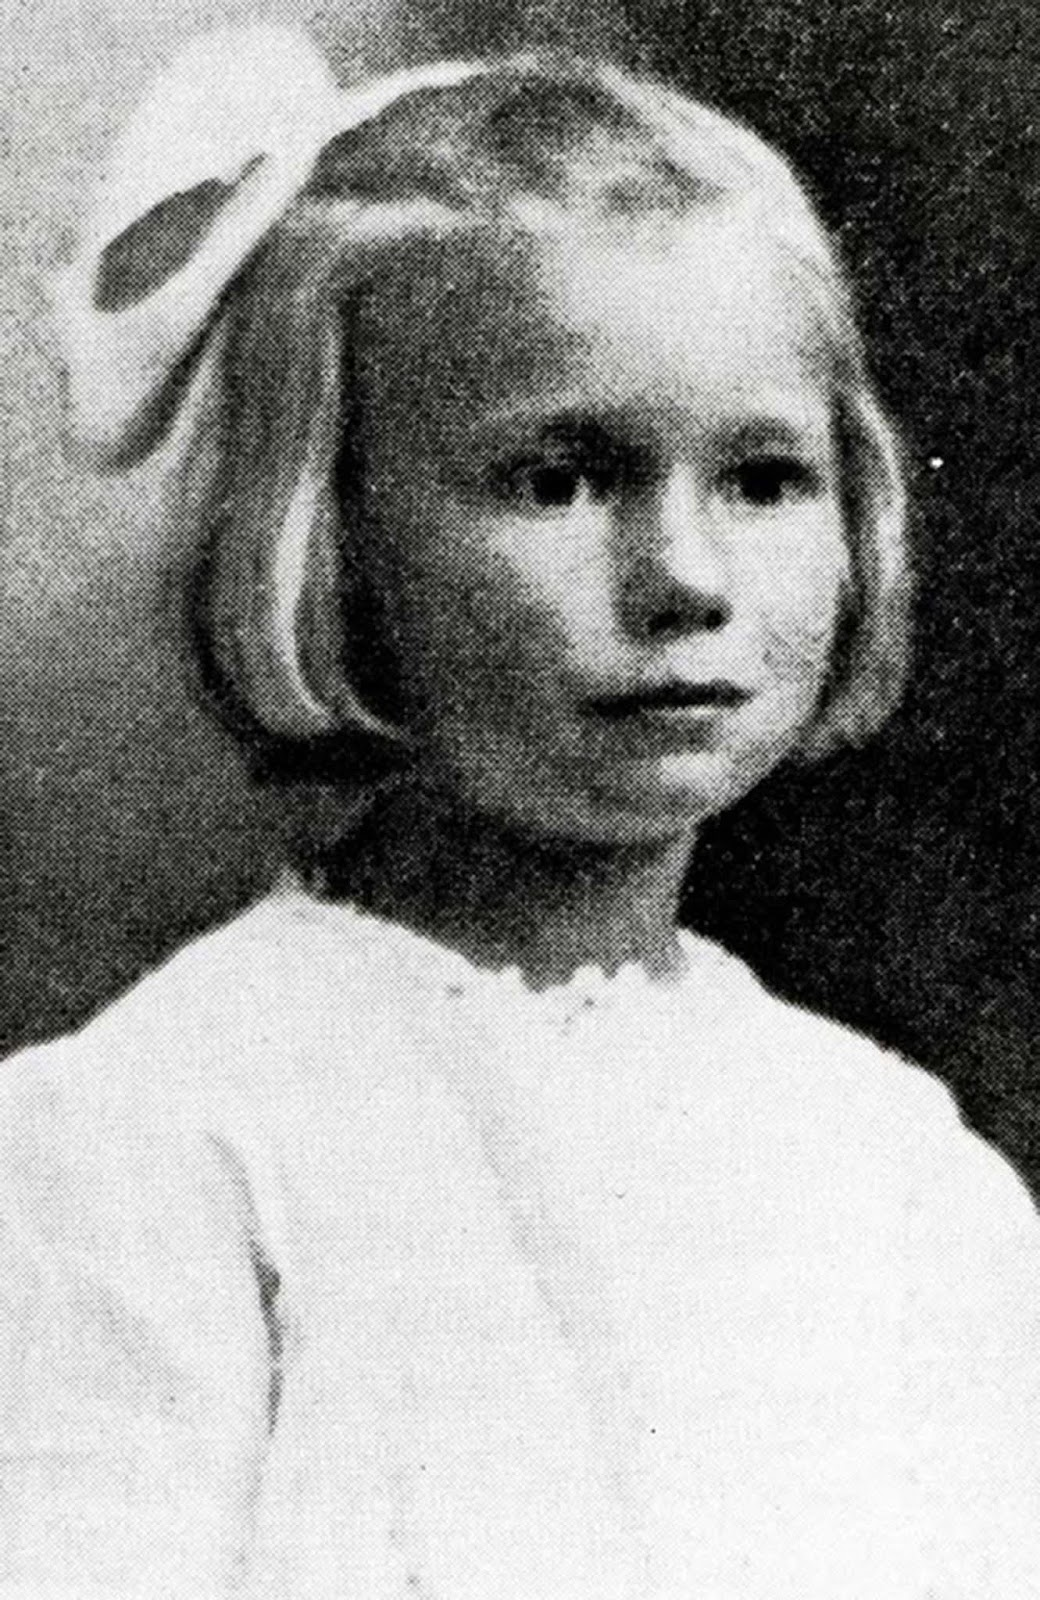 May Pierstorff was 6 in 1914 when she was mailed by her parents in Idaho to nearby relatives.